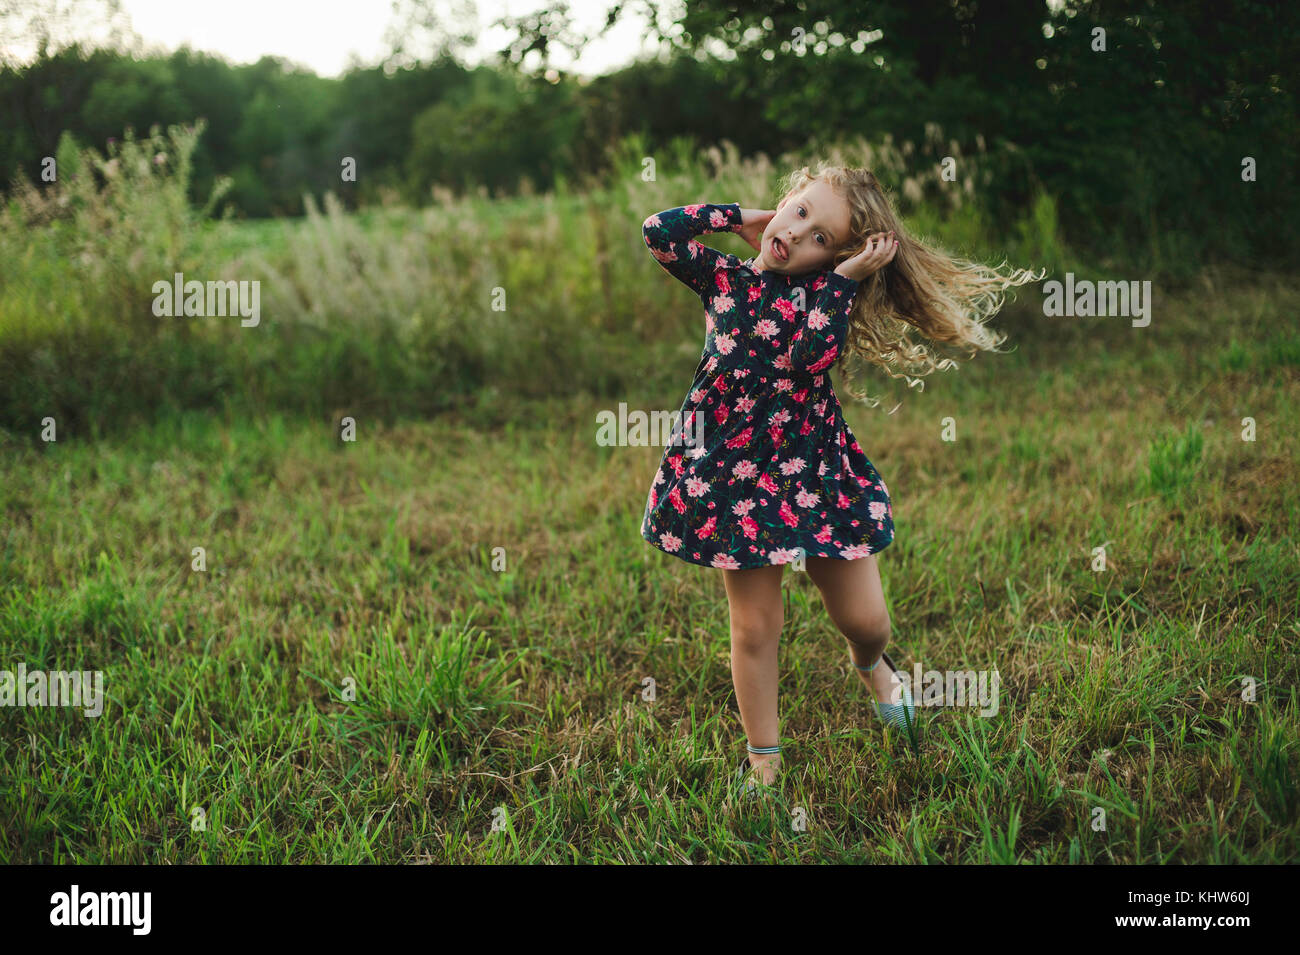 Blond haired girl running and pulling a face in field - Stock Image